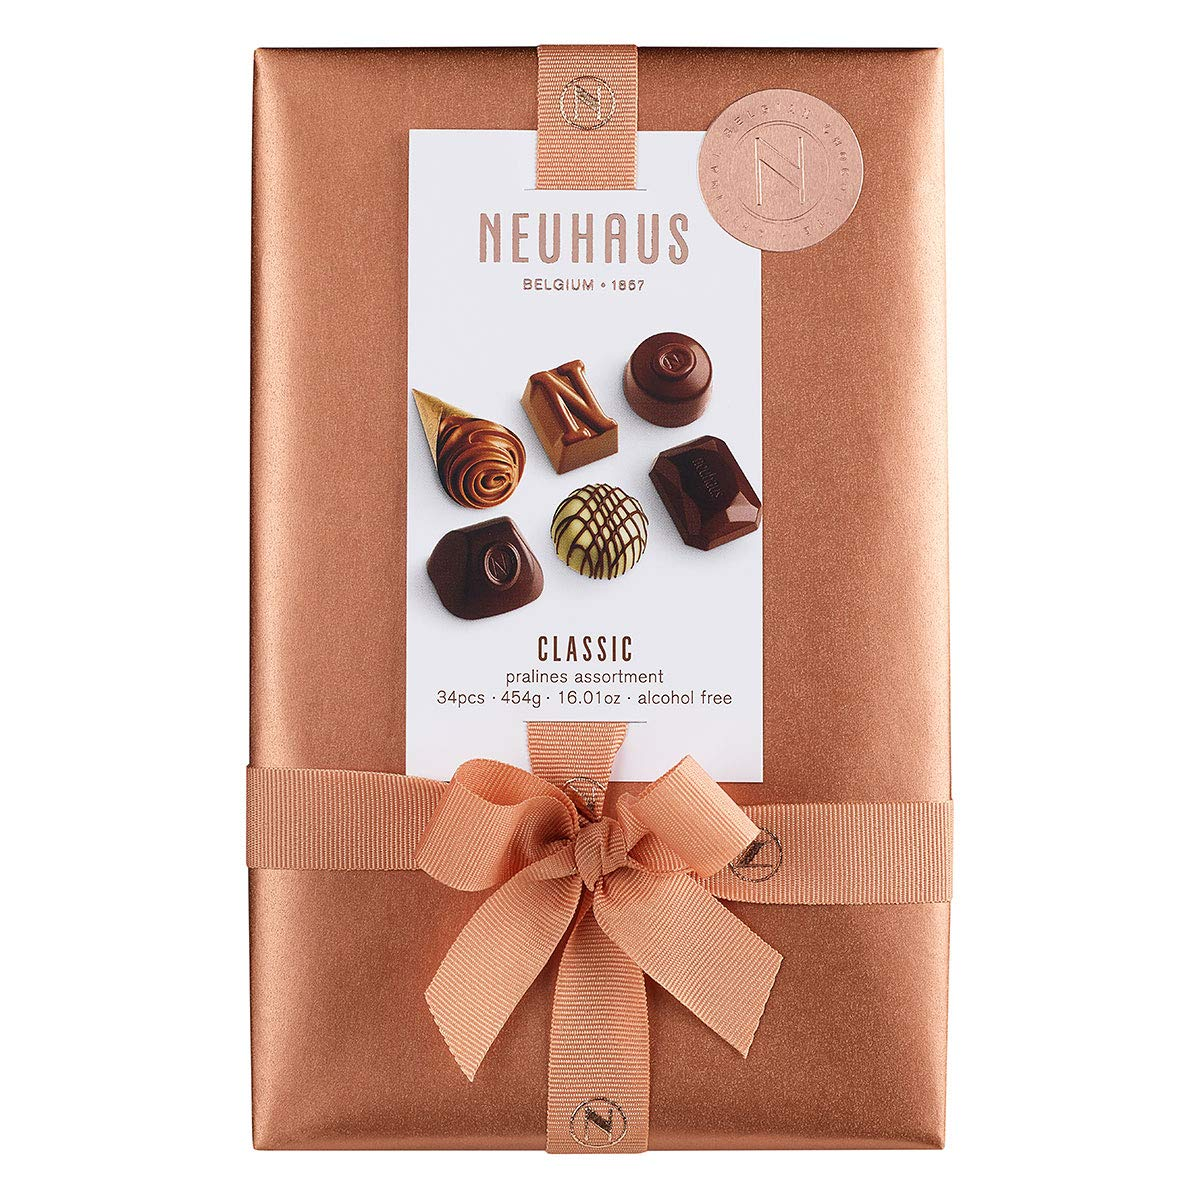 Neuhaus Belgian Chocolate Ballotin (34 pieces) - Gourmet Chocolate Gift Box - 1 lb